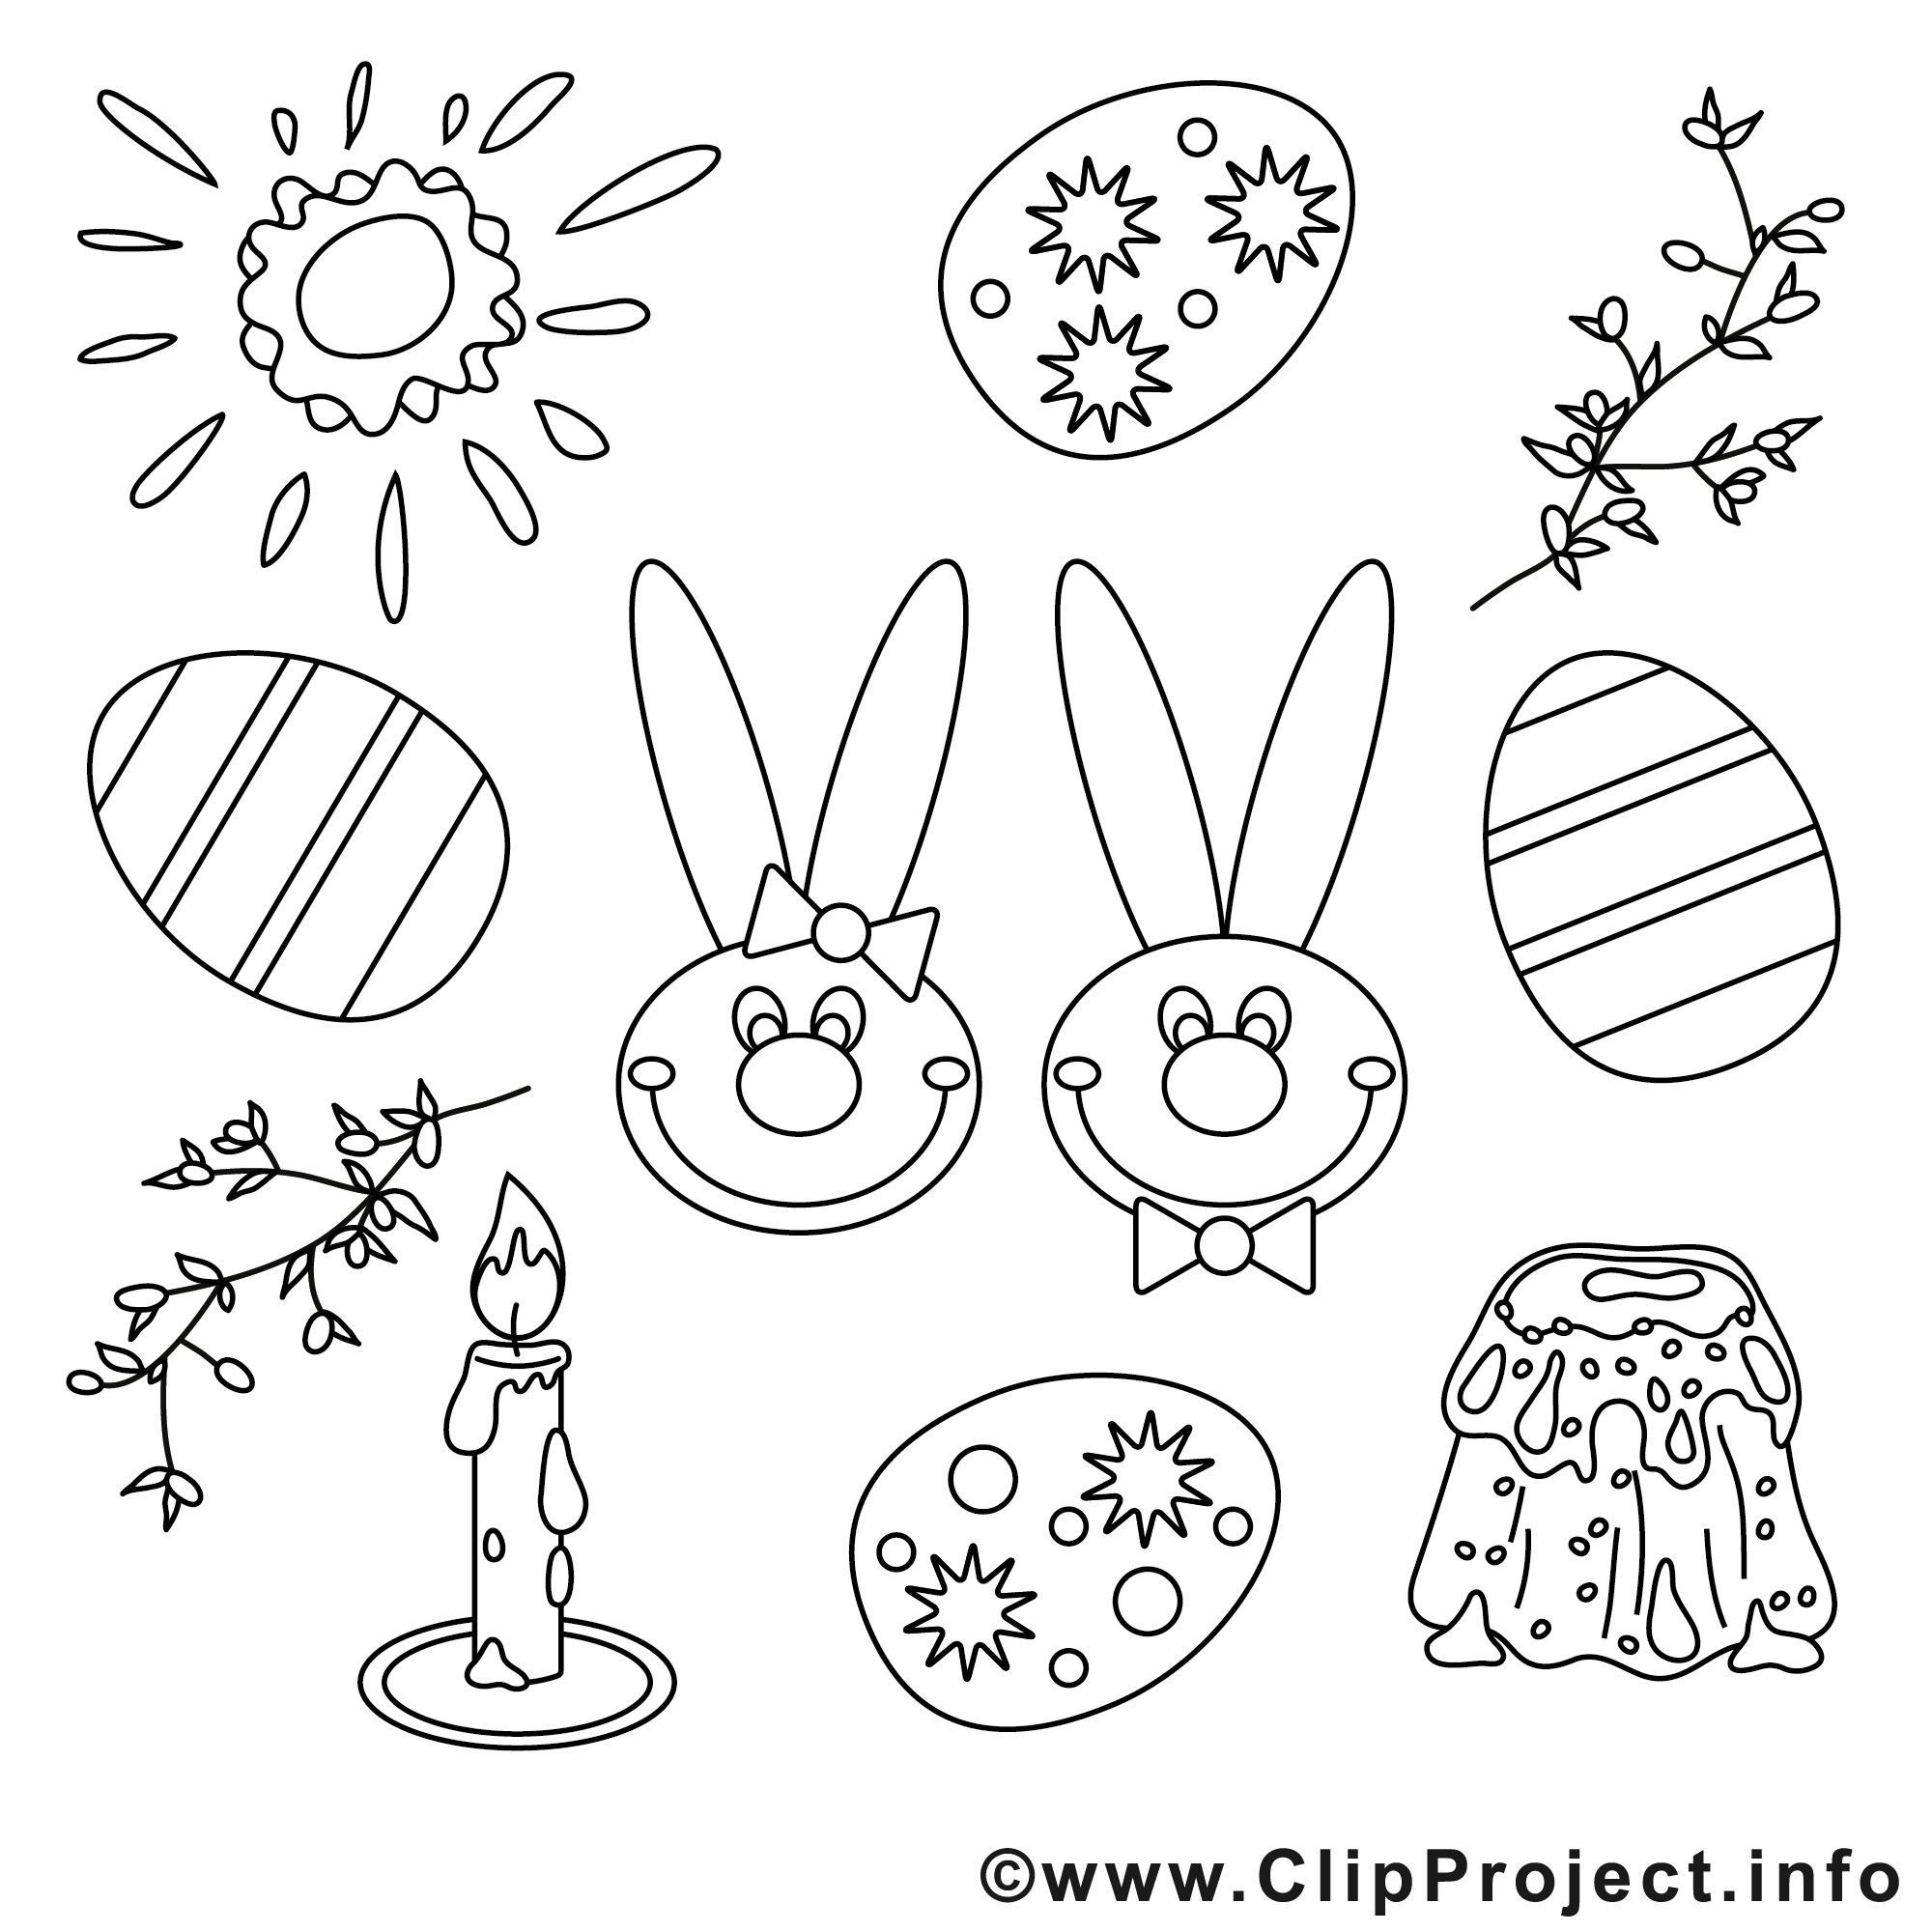 Frische Ostern Malvorlagen #Coloring #Coloring Pages #Coloring